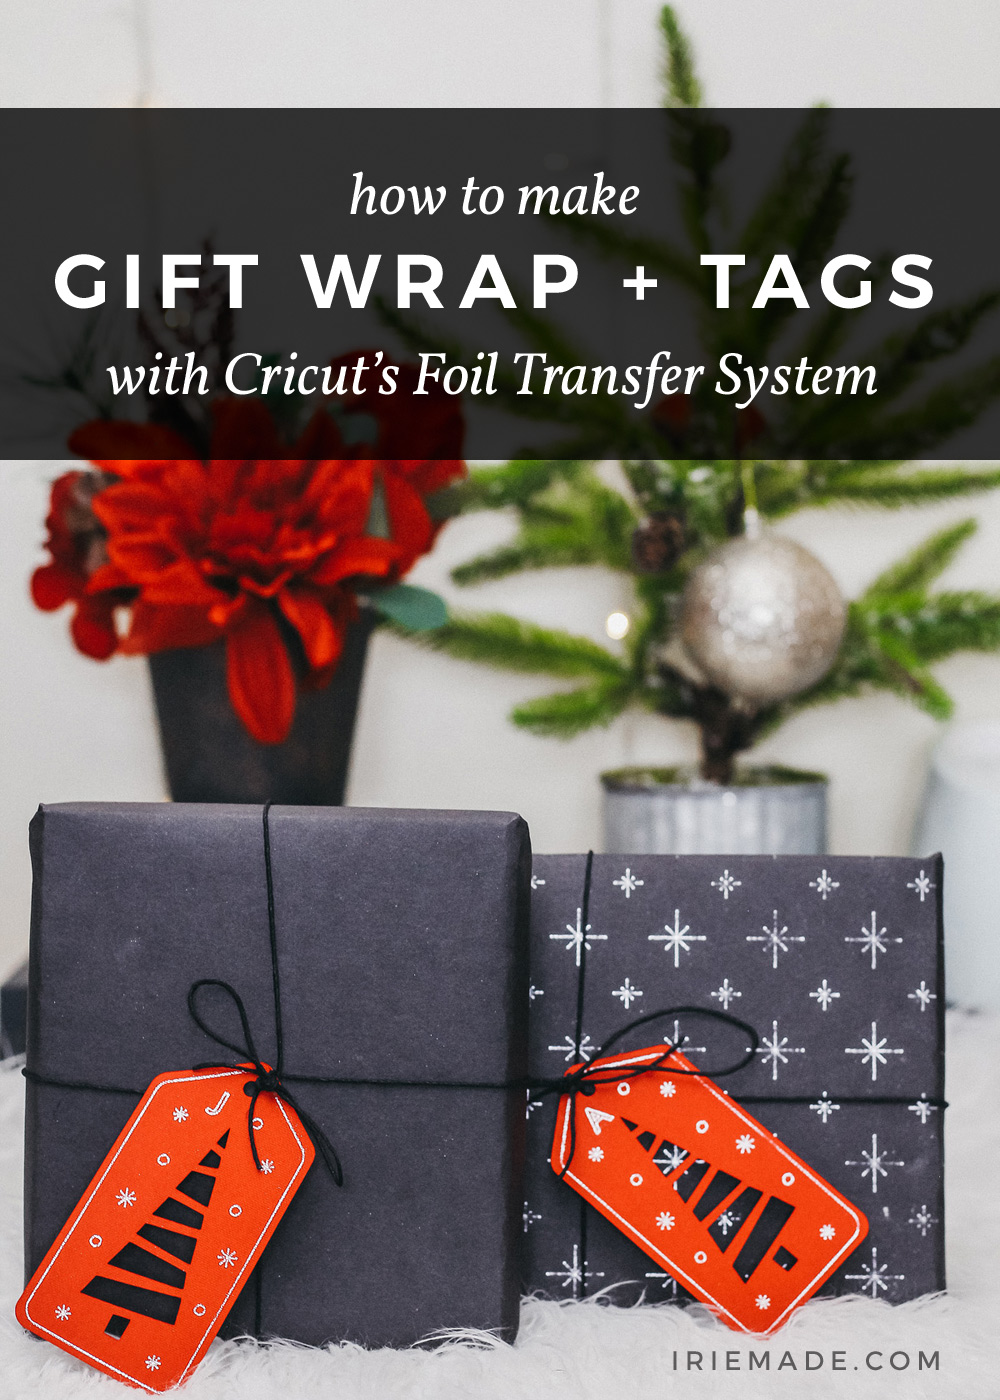 Cricut Foil Transfer Gift Wrap + Gift Tags